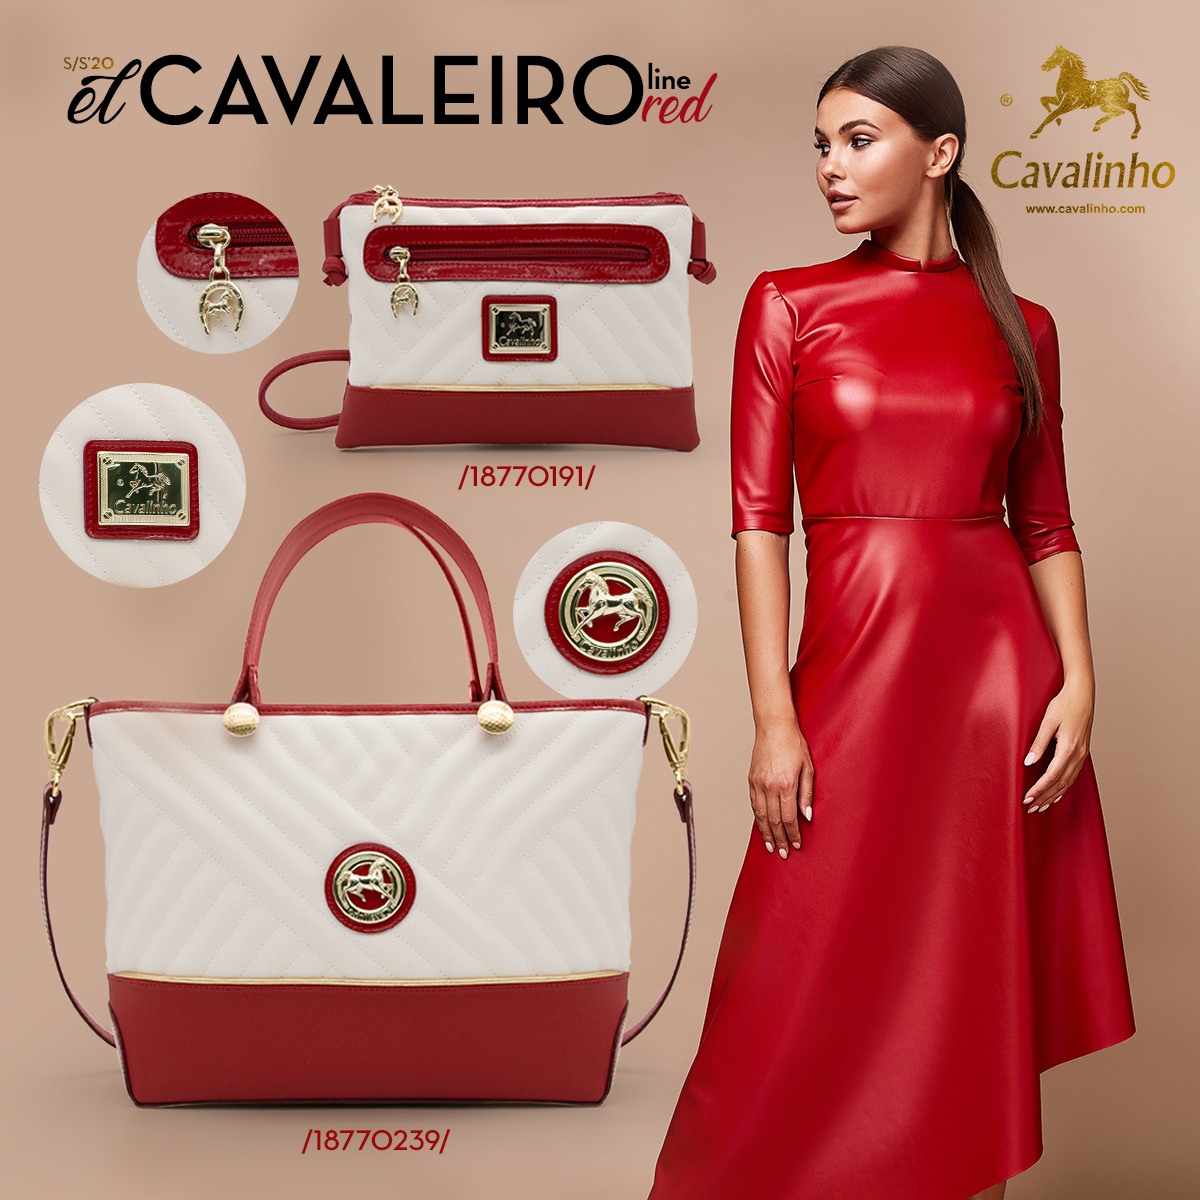 elcavaleiro_red_02